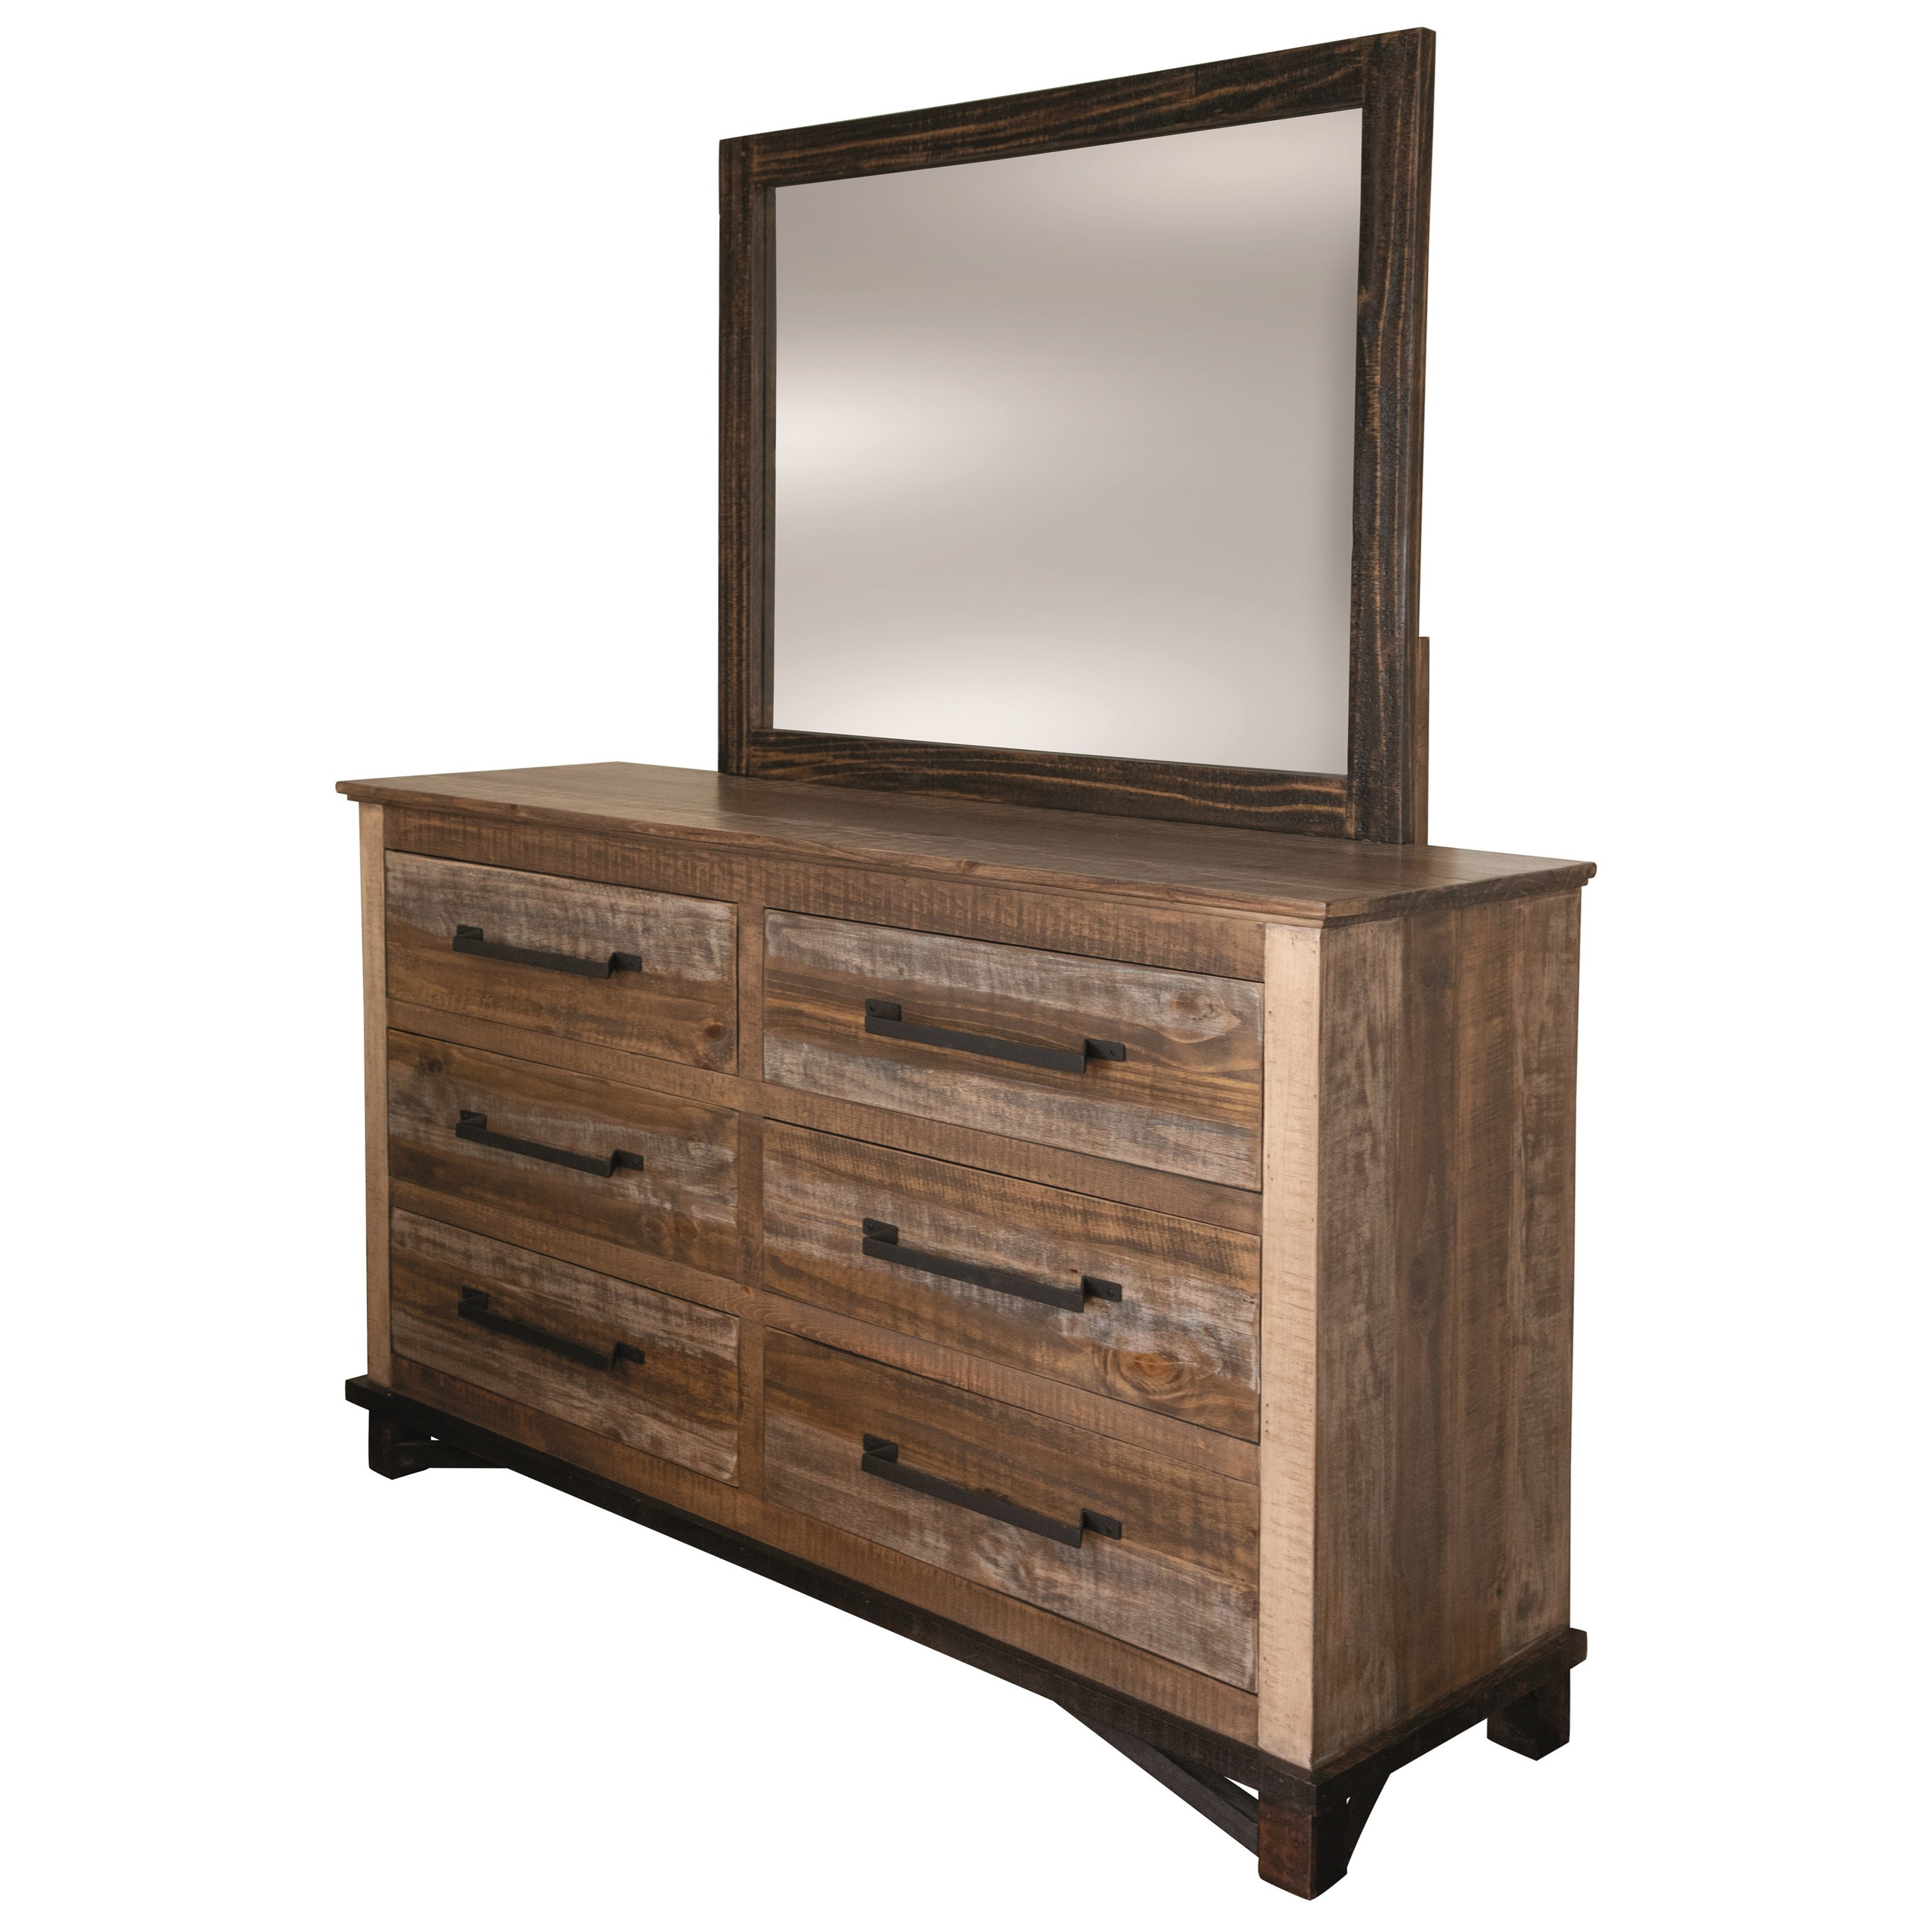 Golden Loft Dresser and Mirror by International Furniture Direct at Gill Brothers Furniture